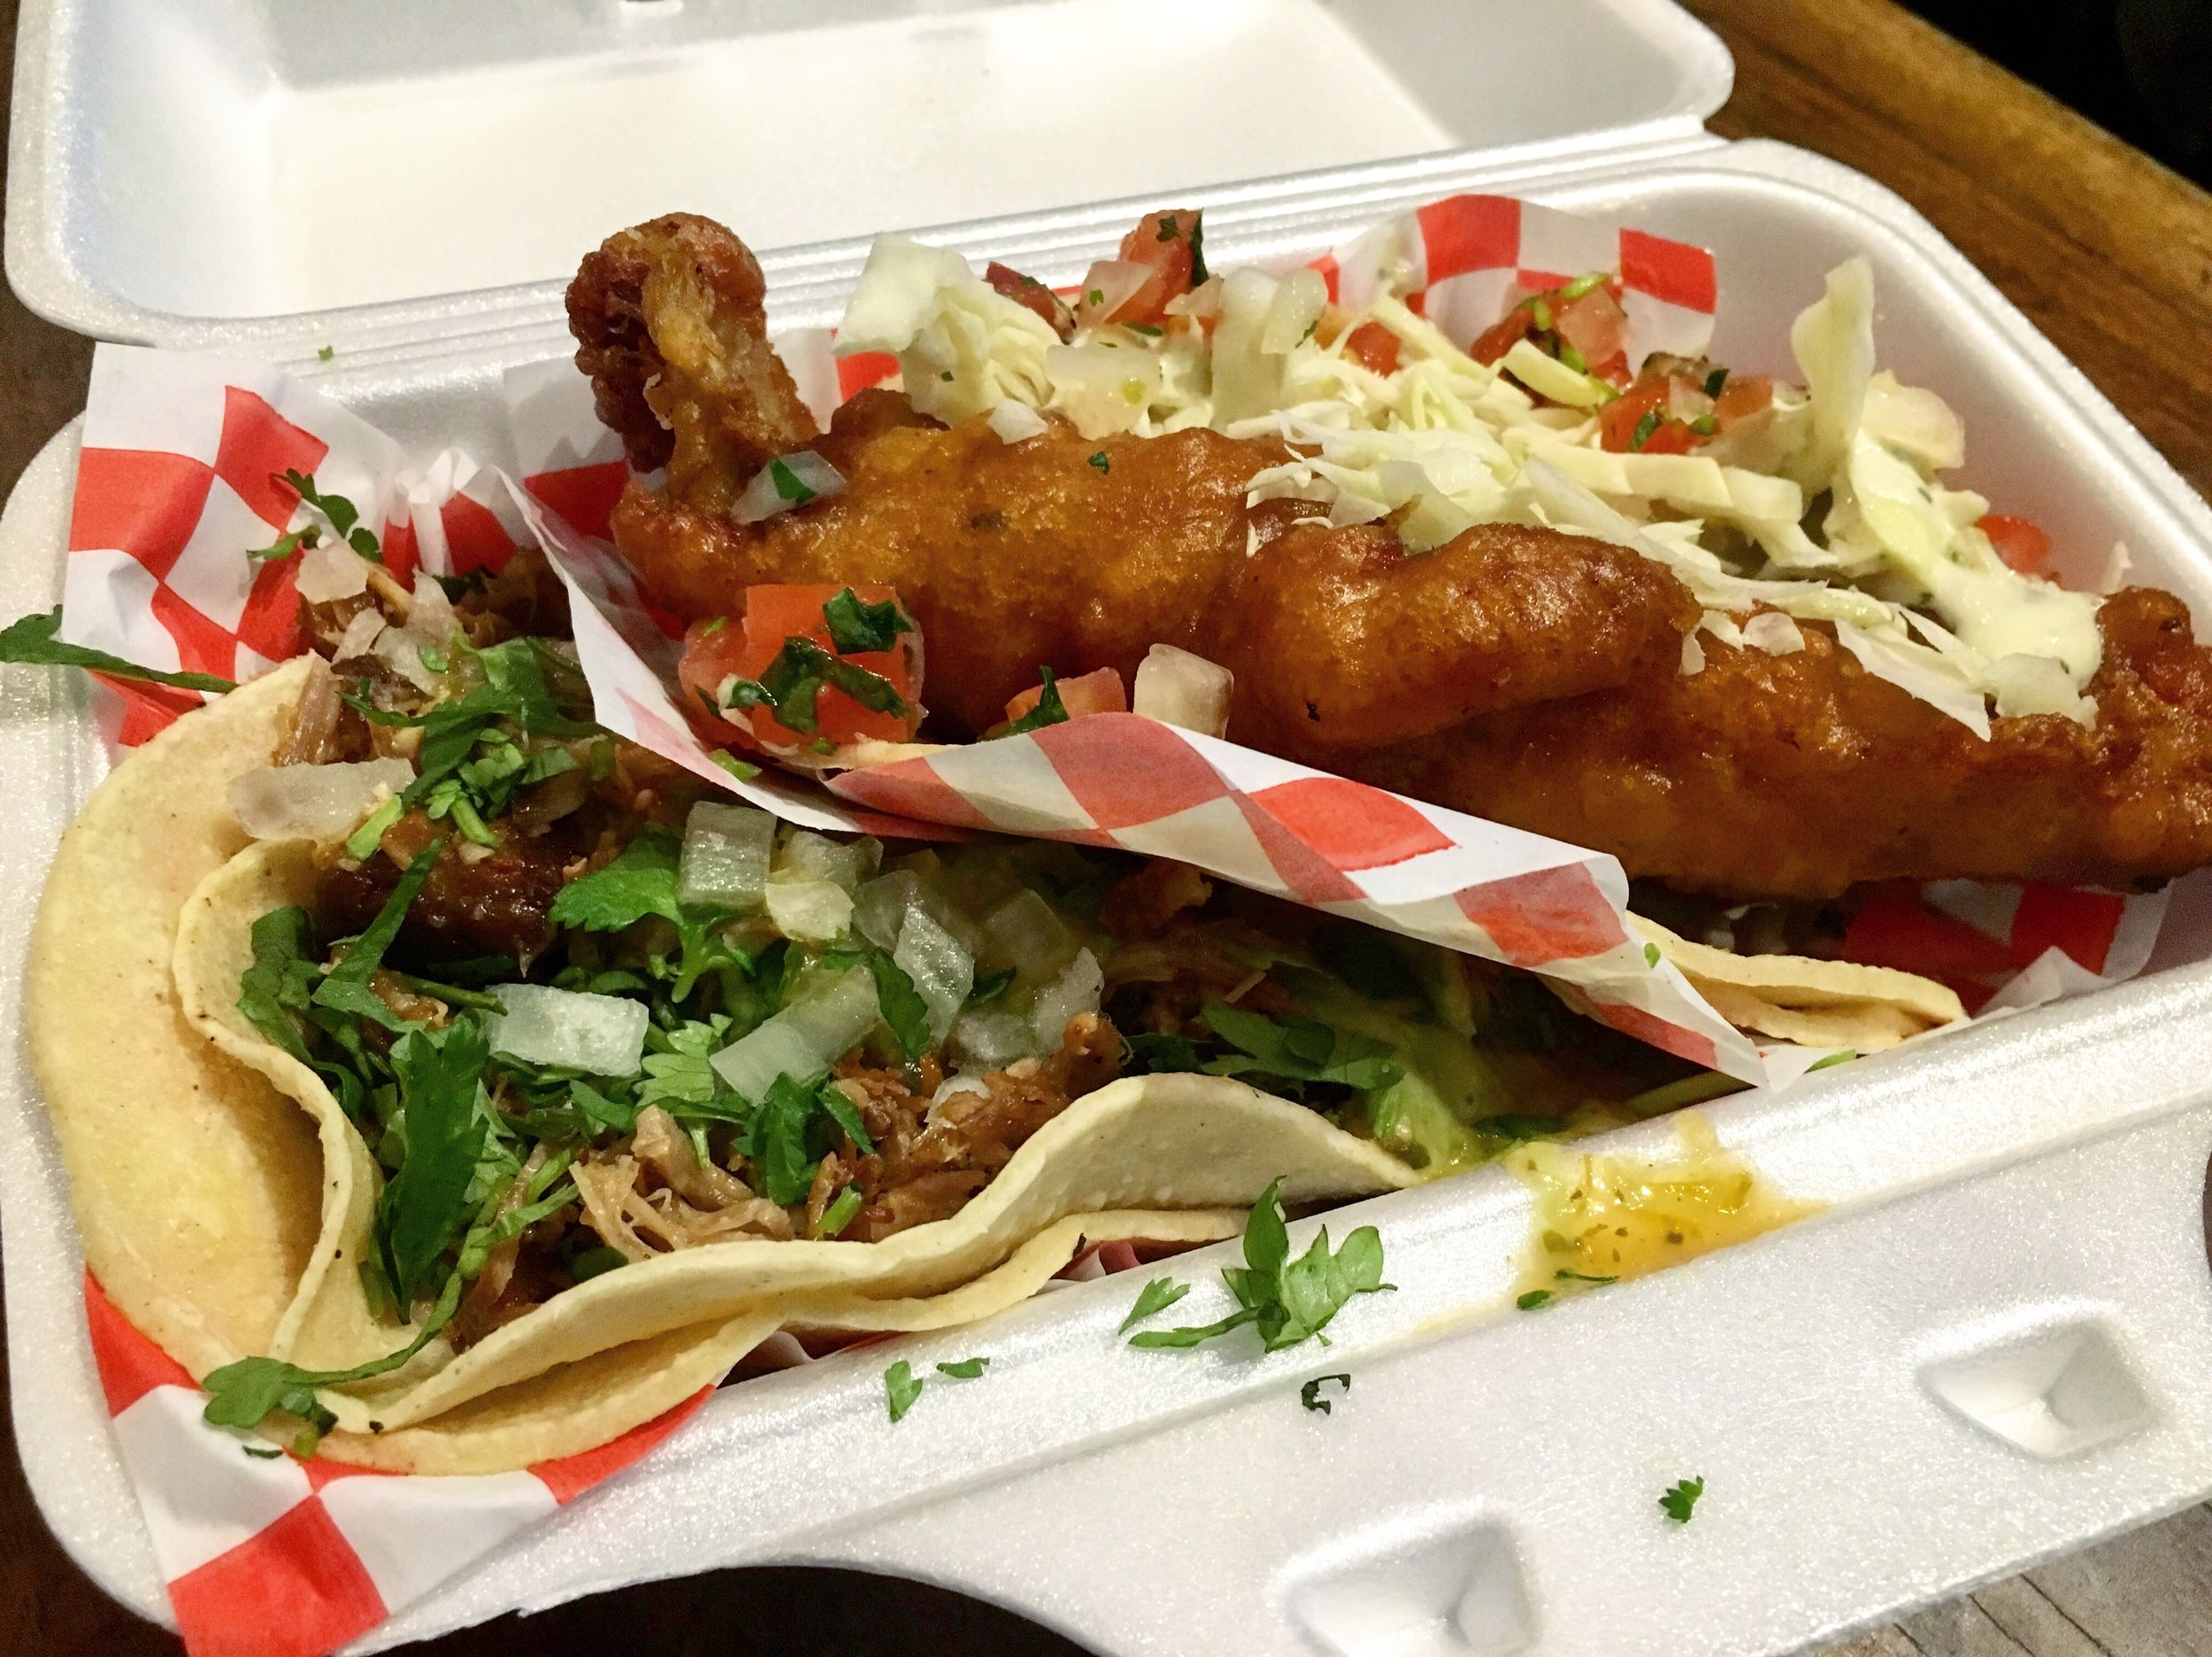 The monstrous fried haddock in the Baja fish taco is encased by its two corn tortillas. You can enjoy your tacos in their quaint shop or take them to go for a delicious on-the-run meal. (CanCulture/Nicole Colozza)